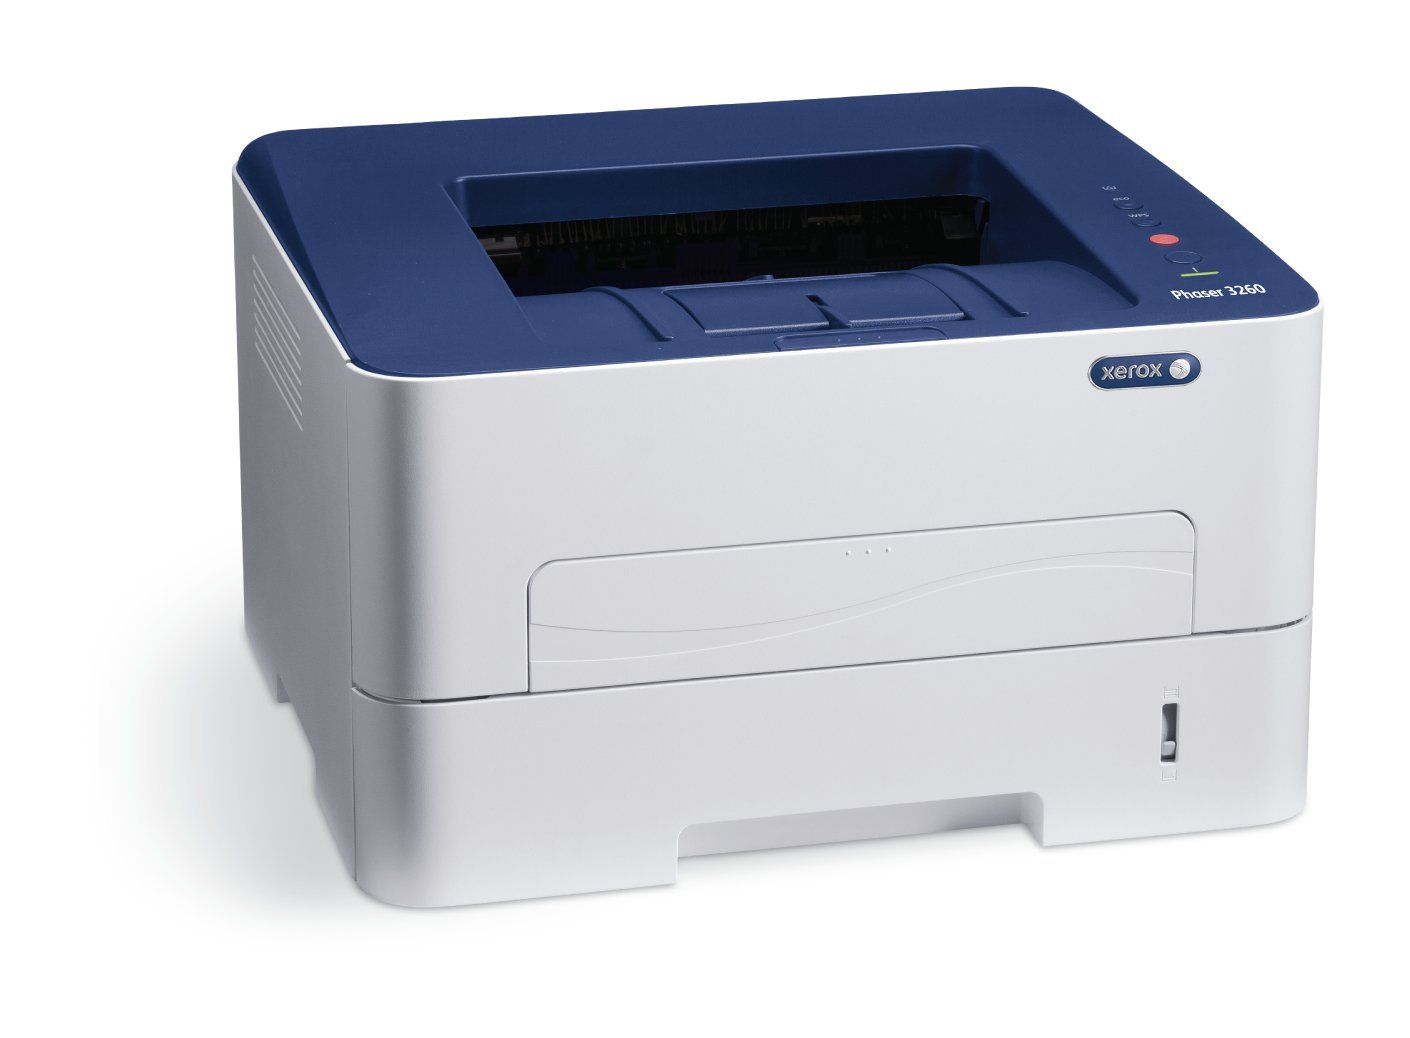 Xerox Phaser 3260/DI Monchrome Laser Printer (Renewed) by Xerox (Image #1)